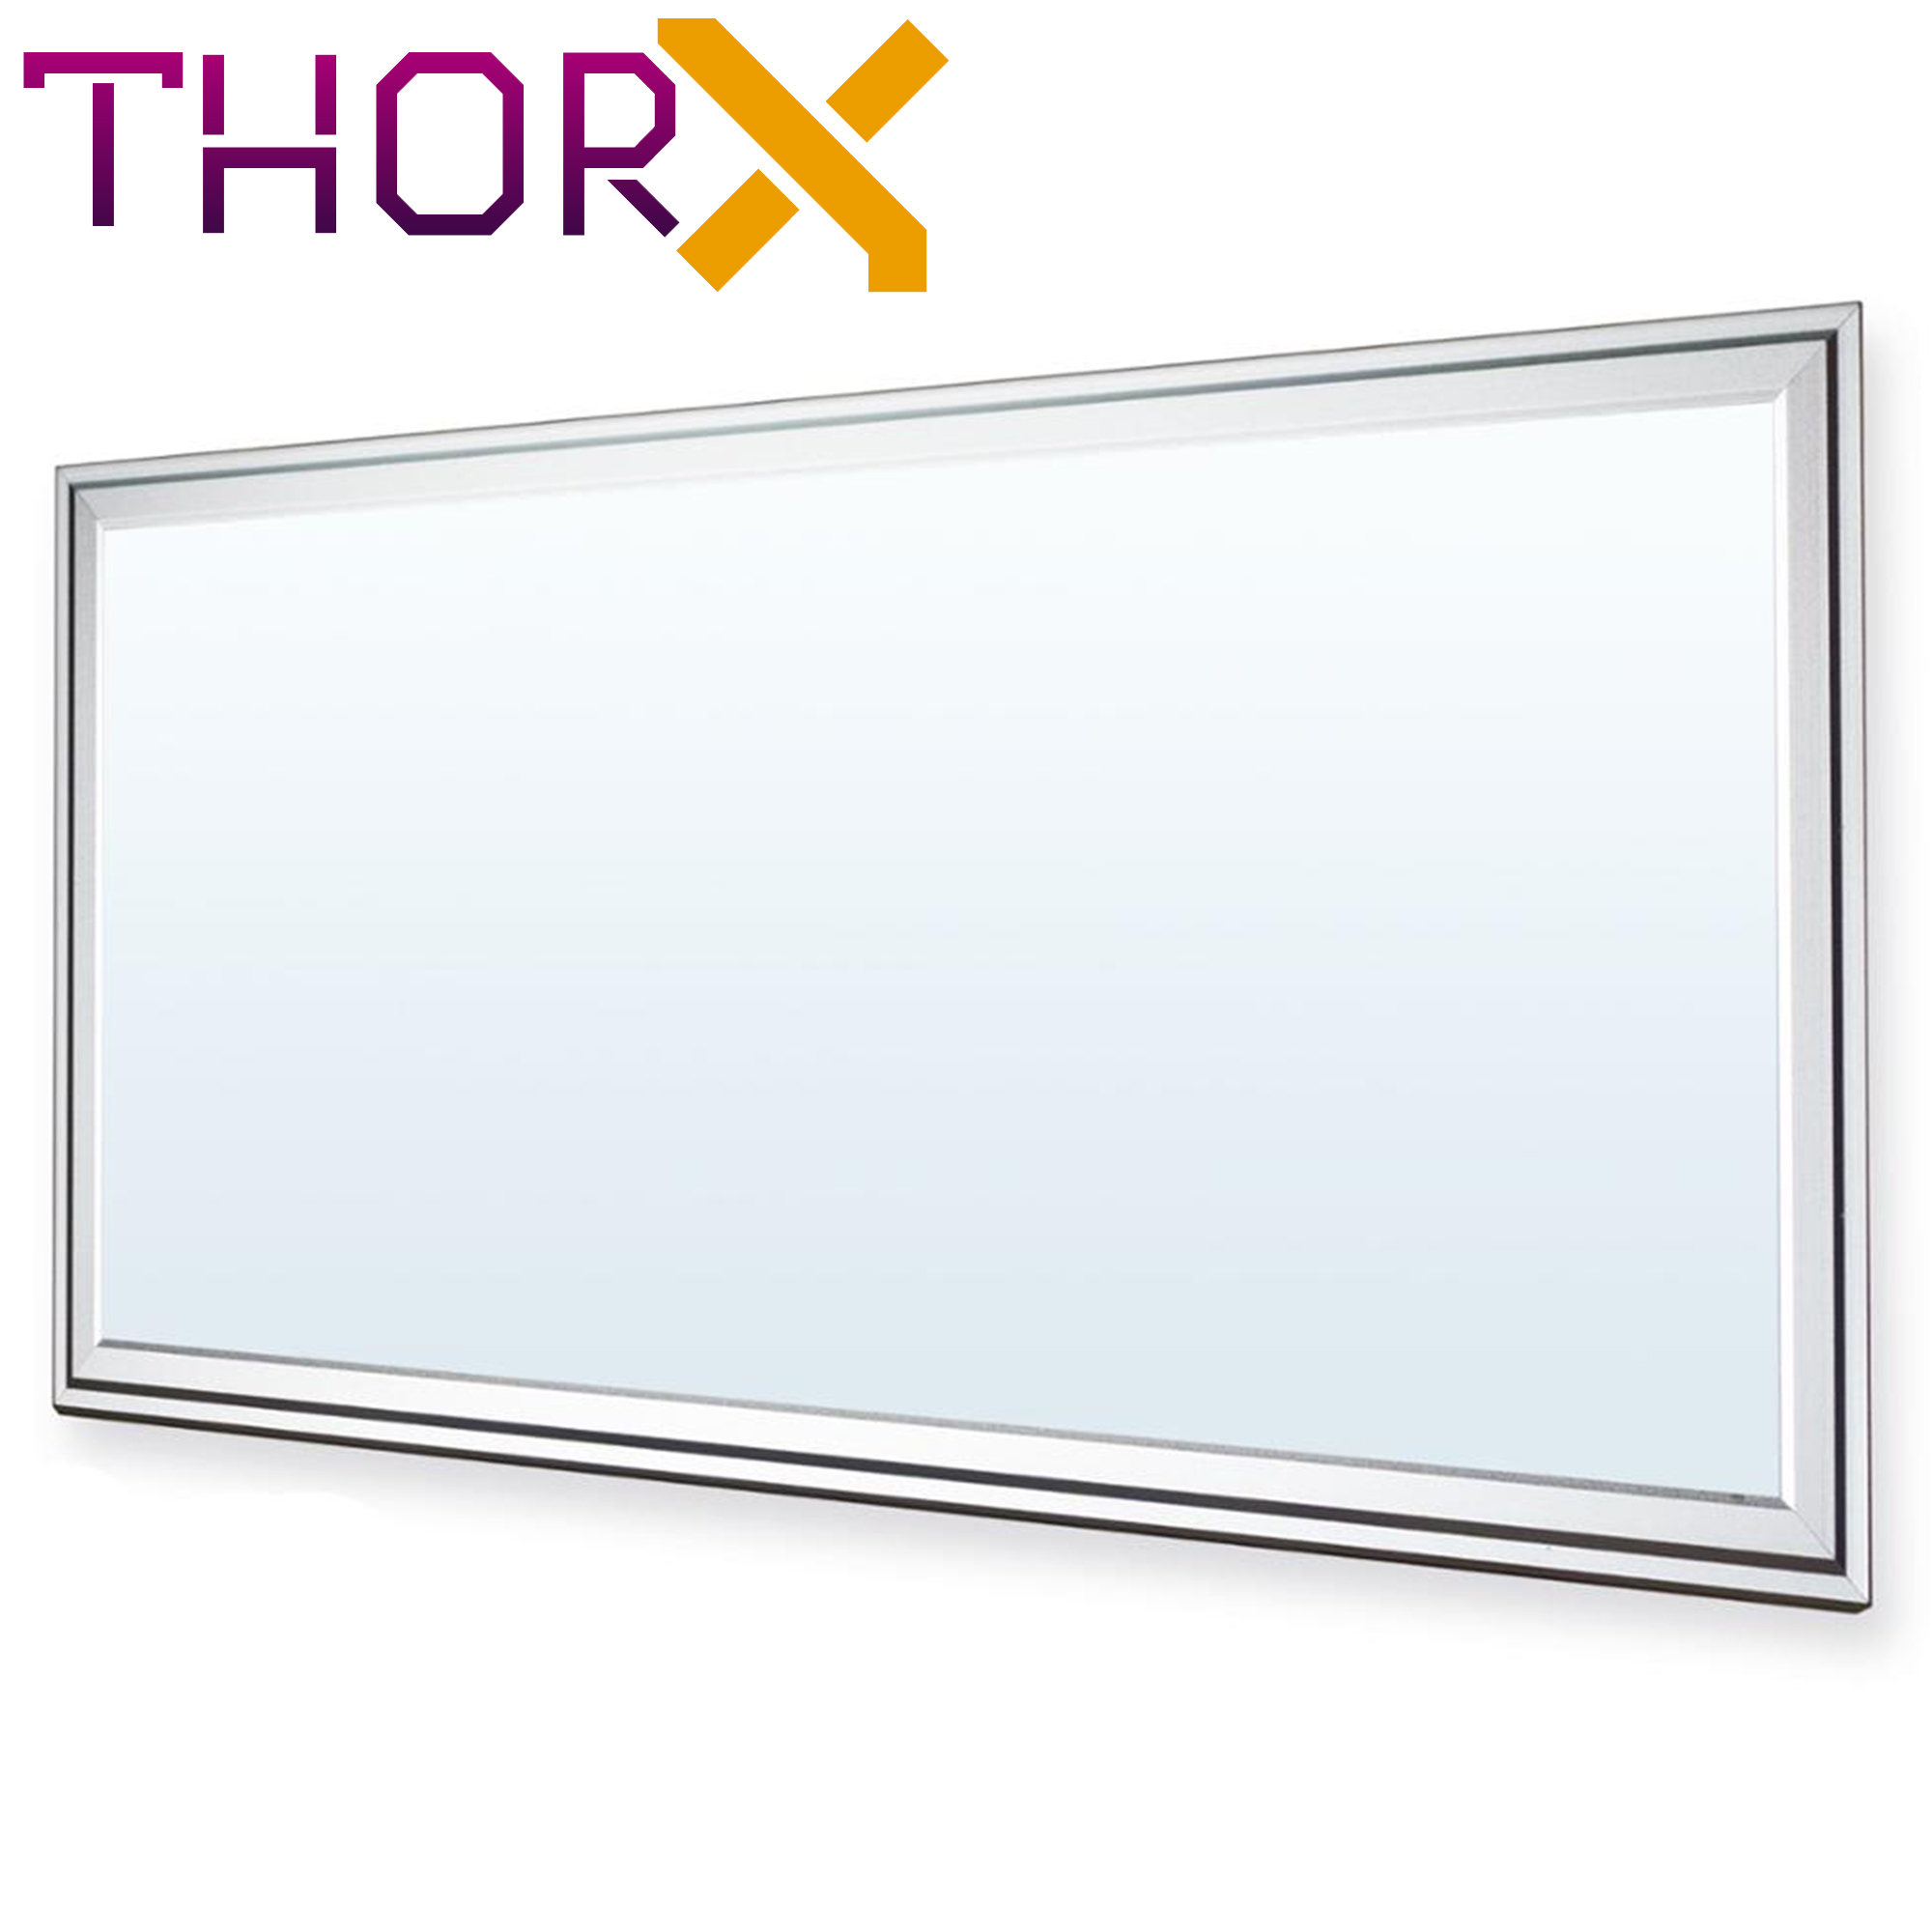 ThorX 60x30 cm Ultraslim LED Panel - 20 W, 1600Lm ceiling light led driver 100-240V cold/warm/neutral Japan Korea fast shipping image